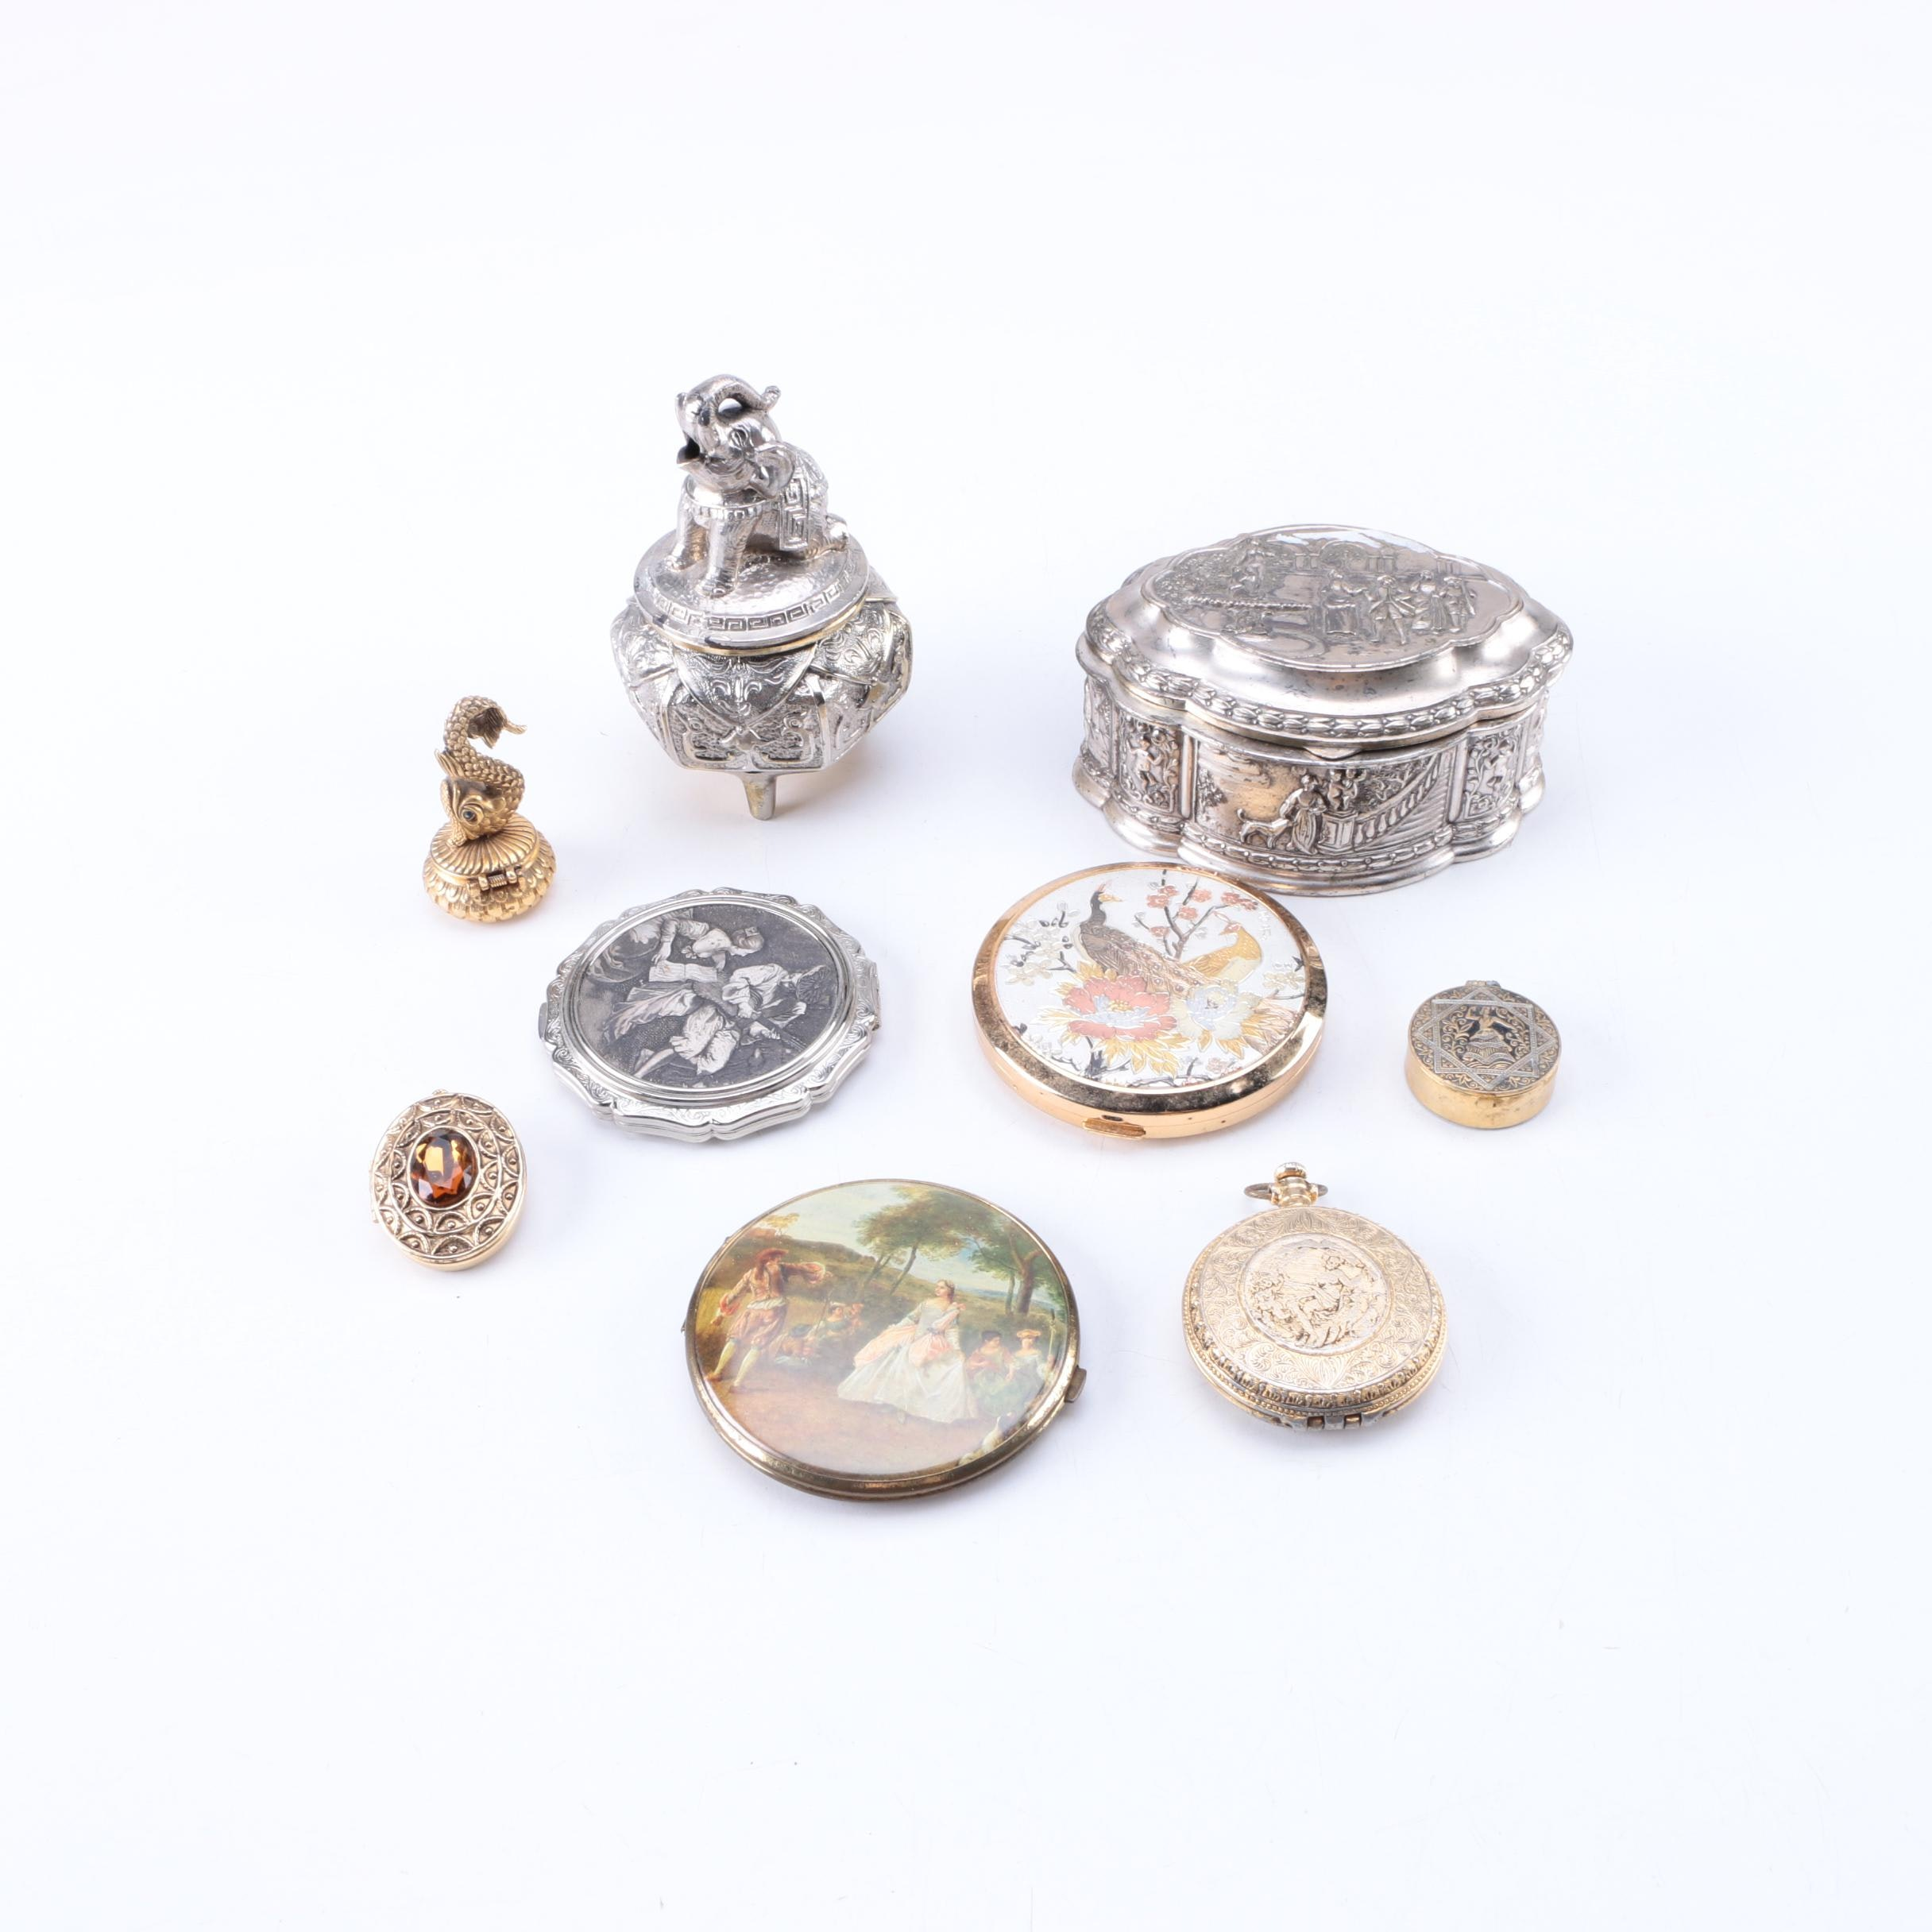 Trinket Boxes and Compacts